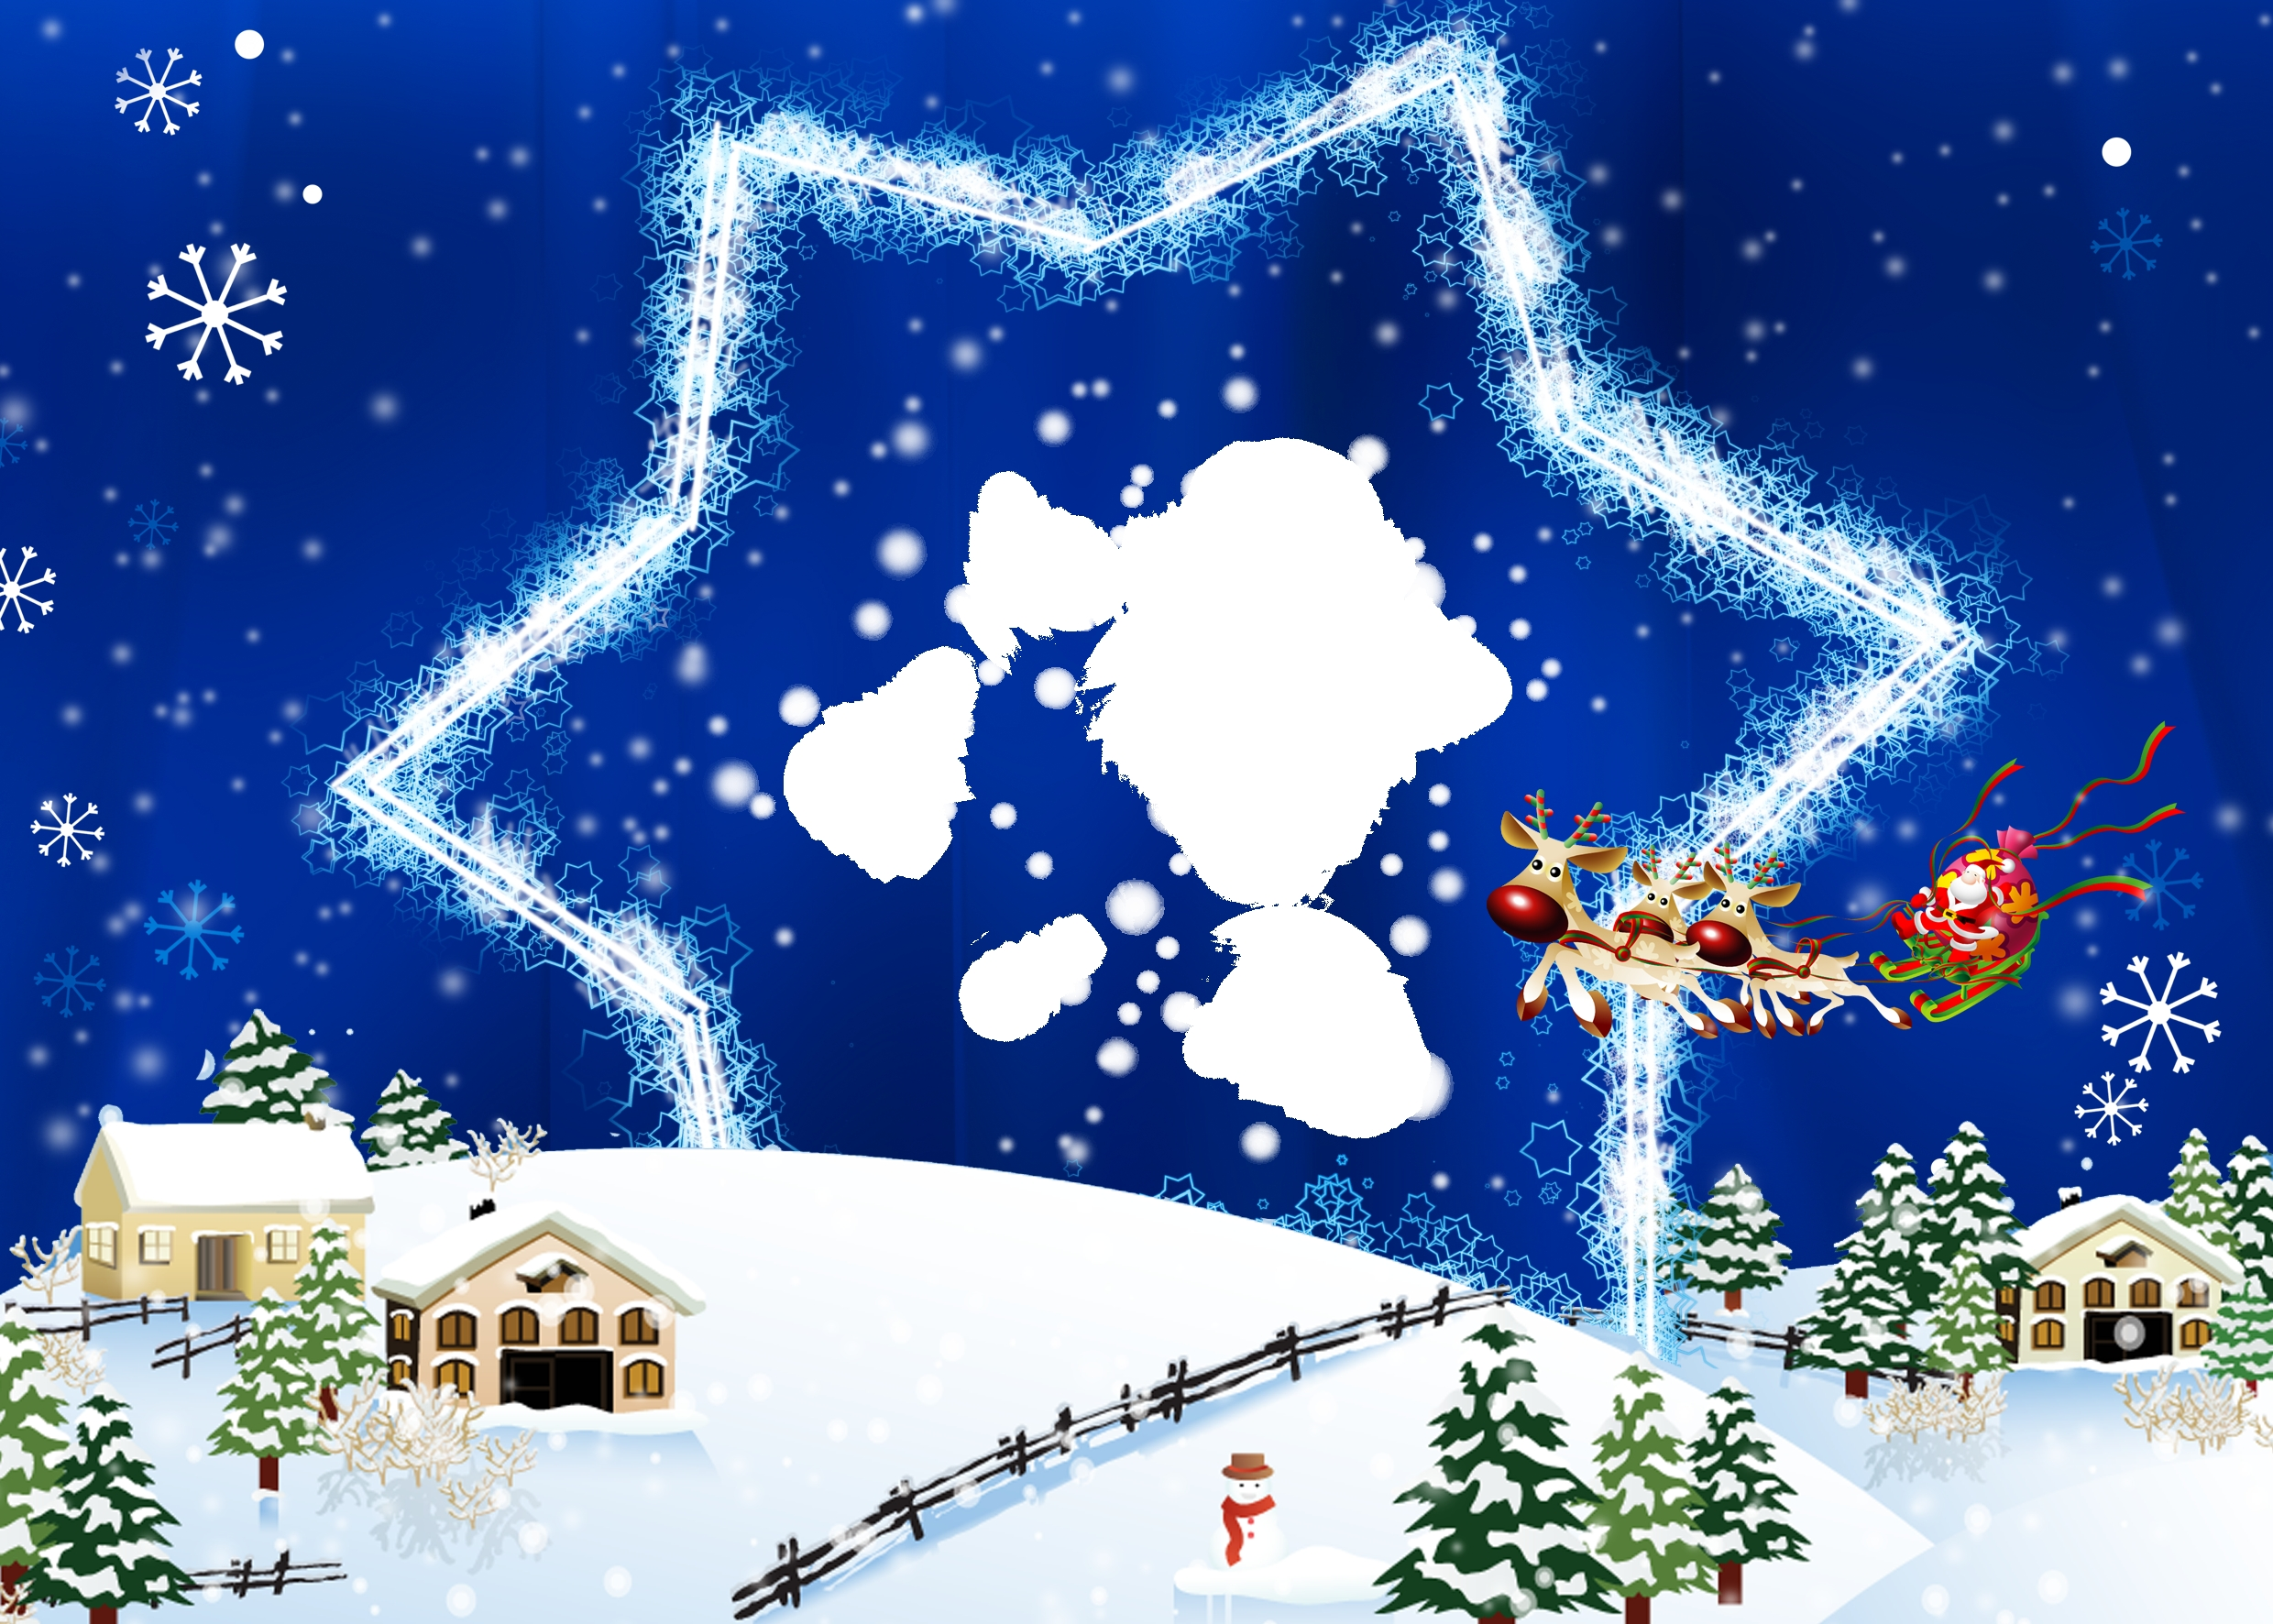 65360 download wallpaper Holidays, New Year, Christmas, Postcard, Star, Deers, Santa Claus, Flight, Colorfully, Graphically screensavers and pictures for free